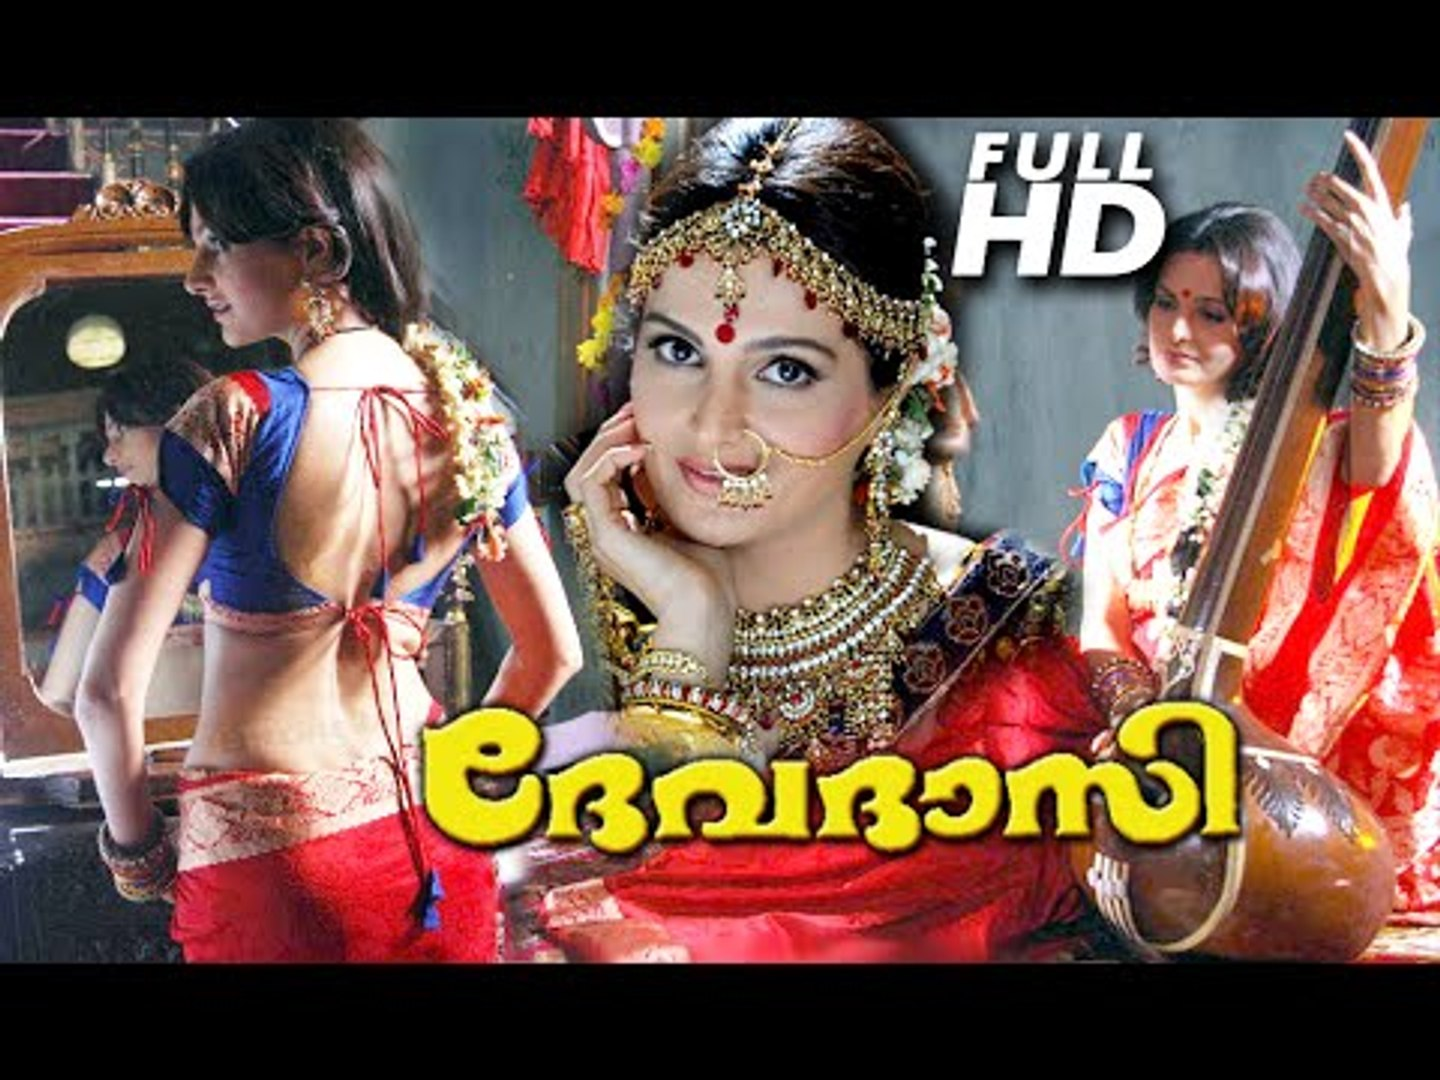 Malayalam Full Movie 2016 New Releases # Malayalam Hot Movie Full Movie 18+ New HD # DEVADASI